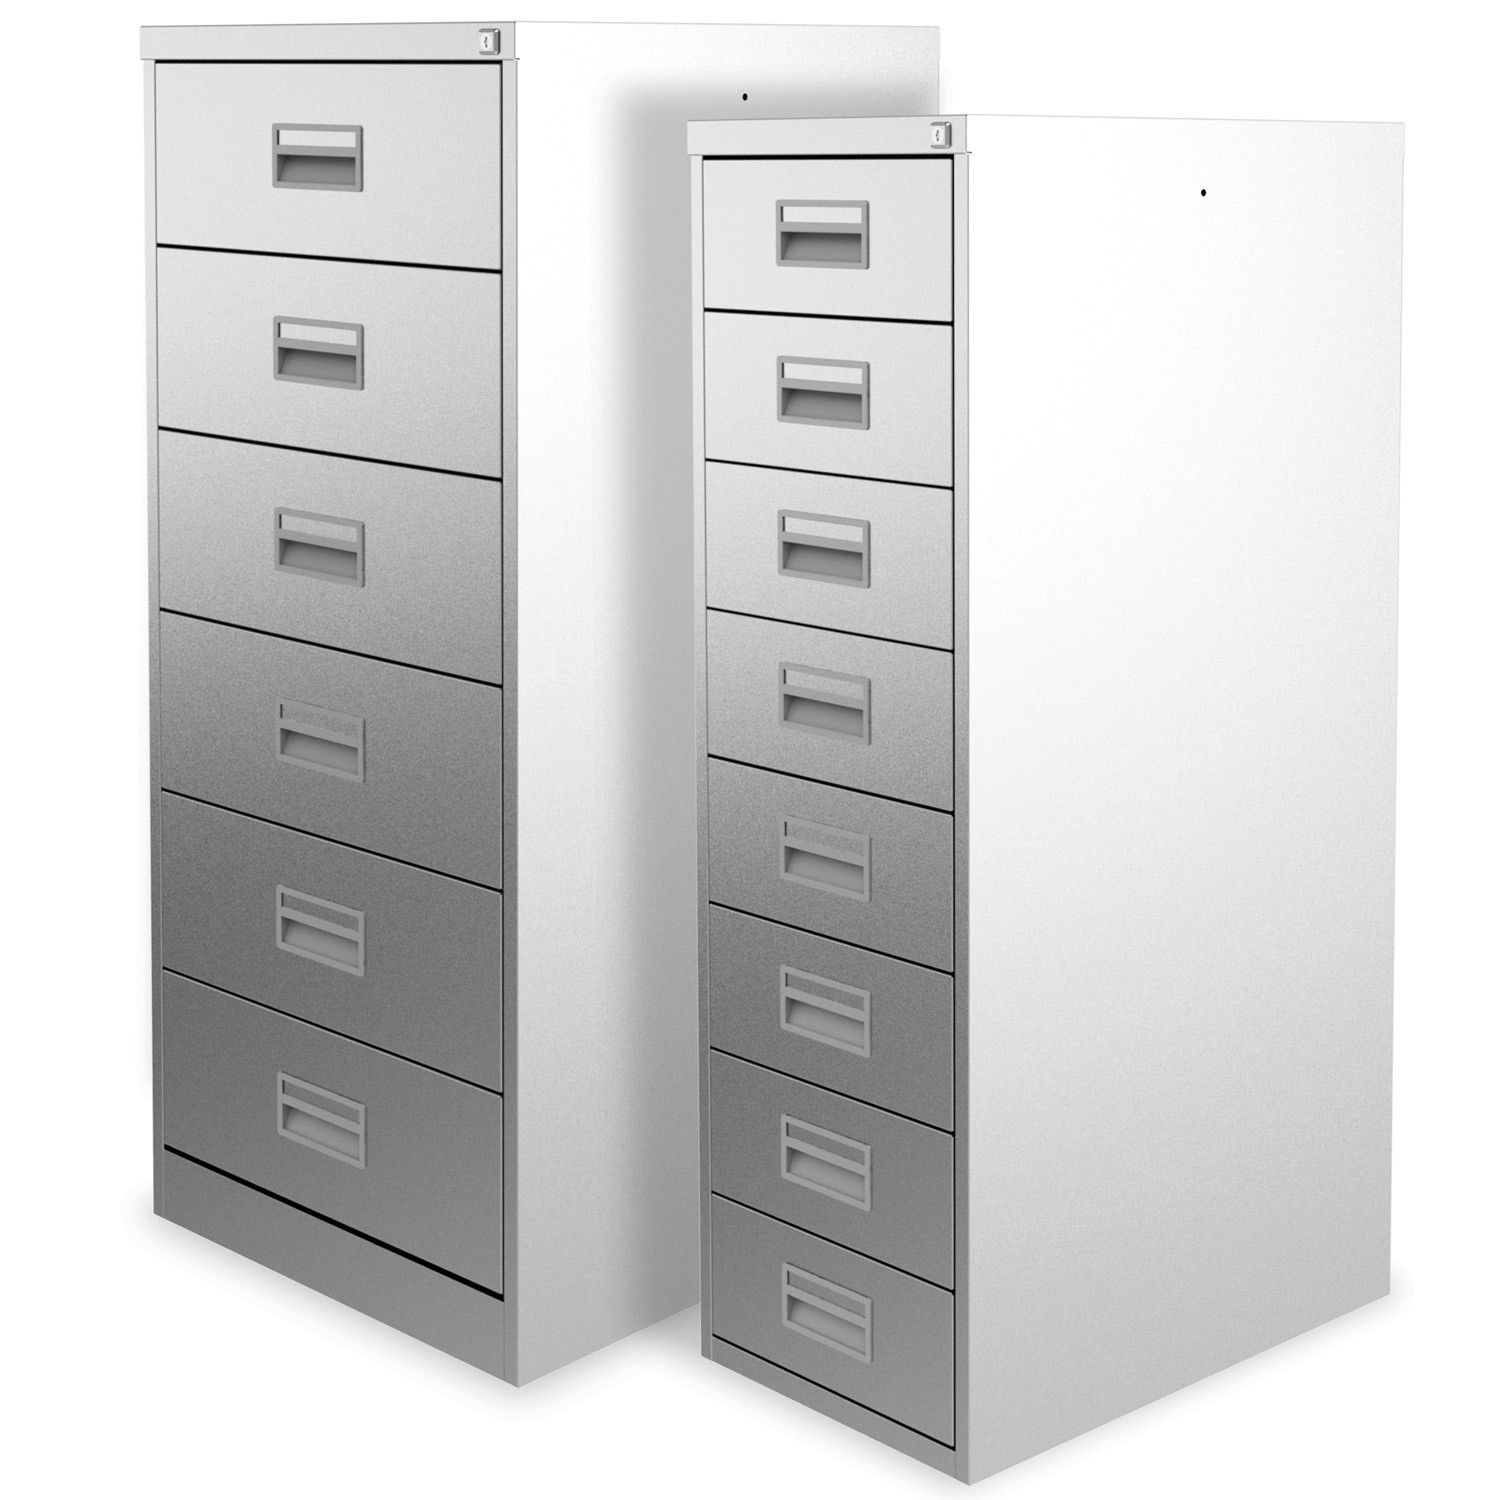 Media Card Index Cabinets by Silverline